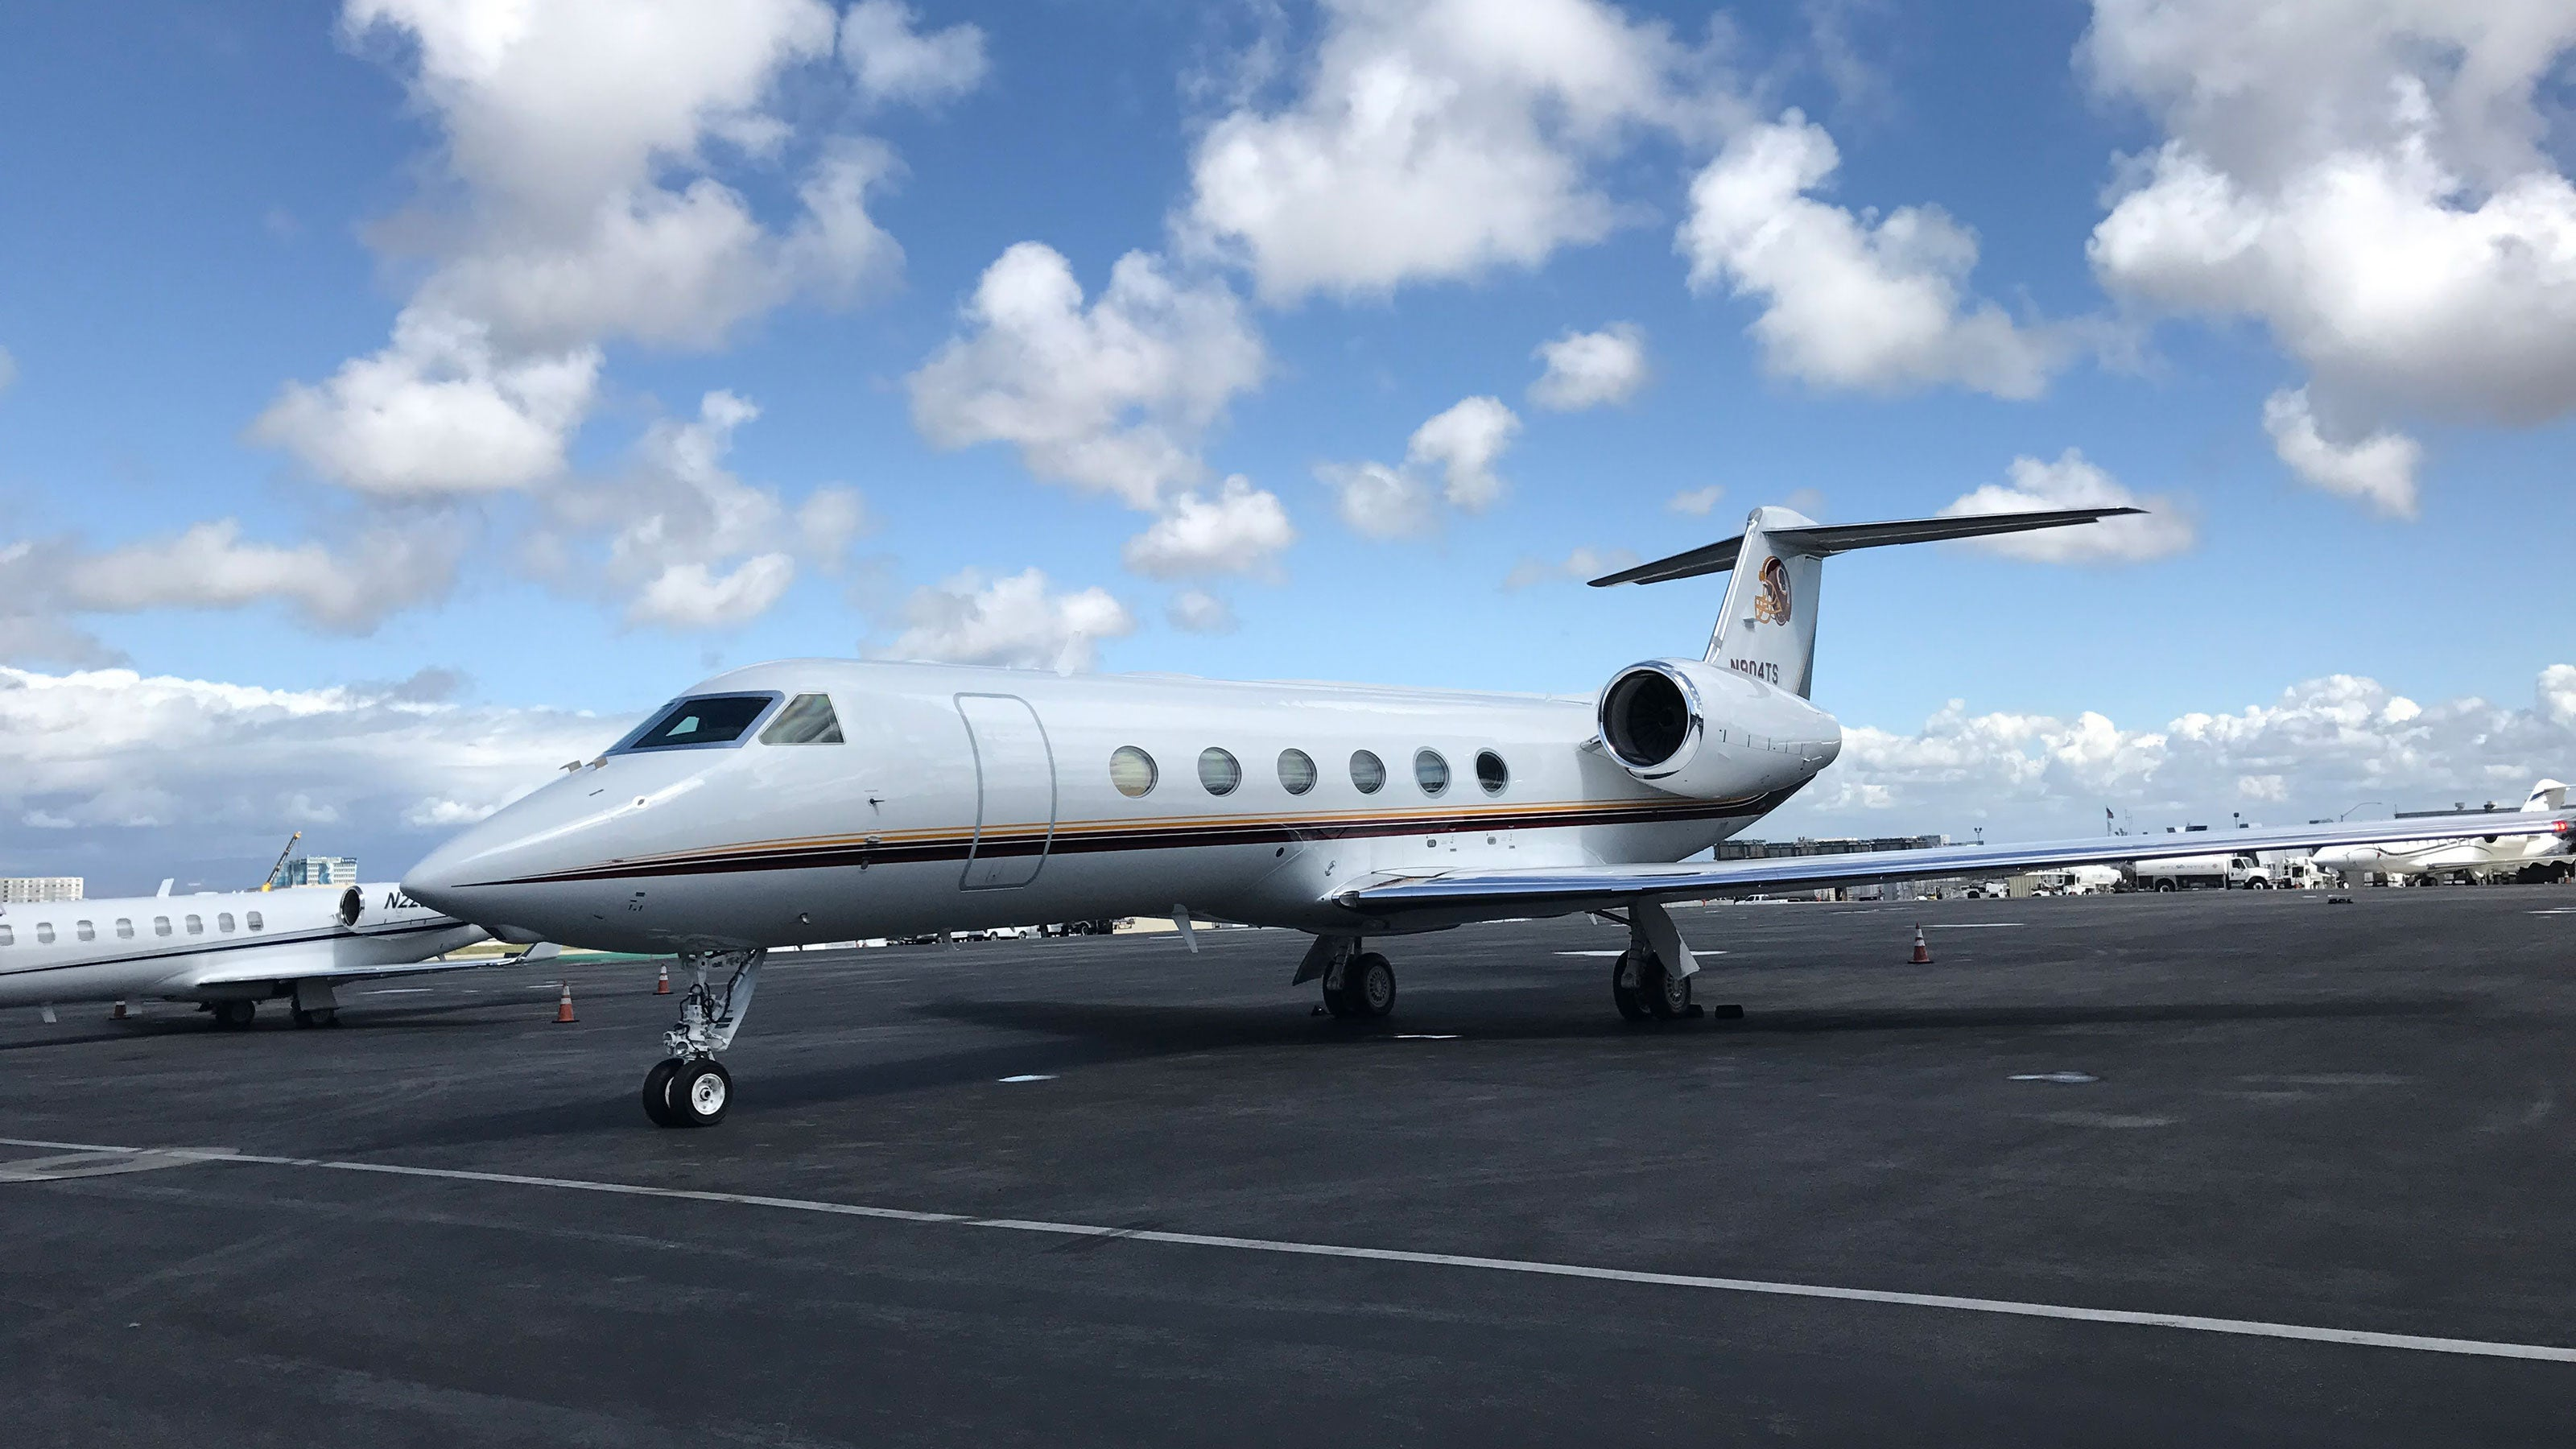 Everything you need to know about booking empty leg private jet flights